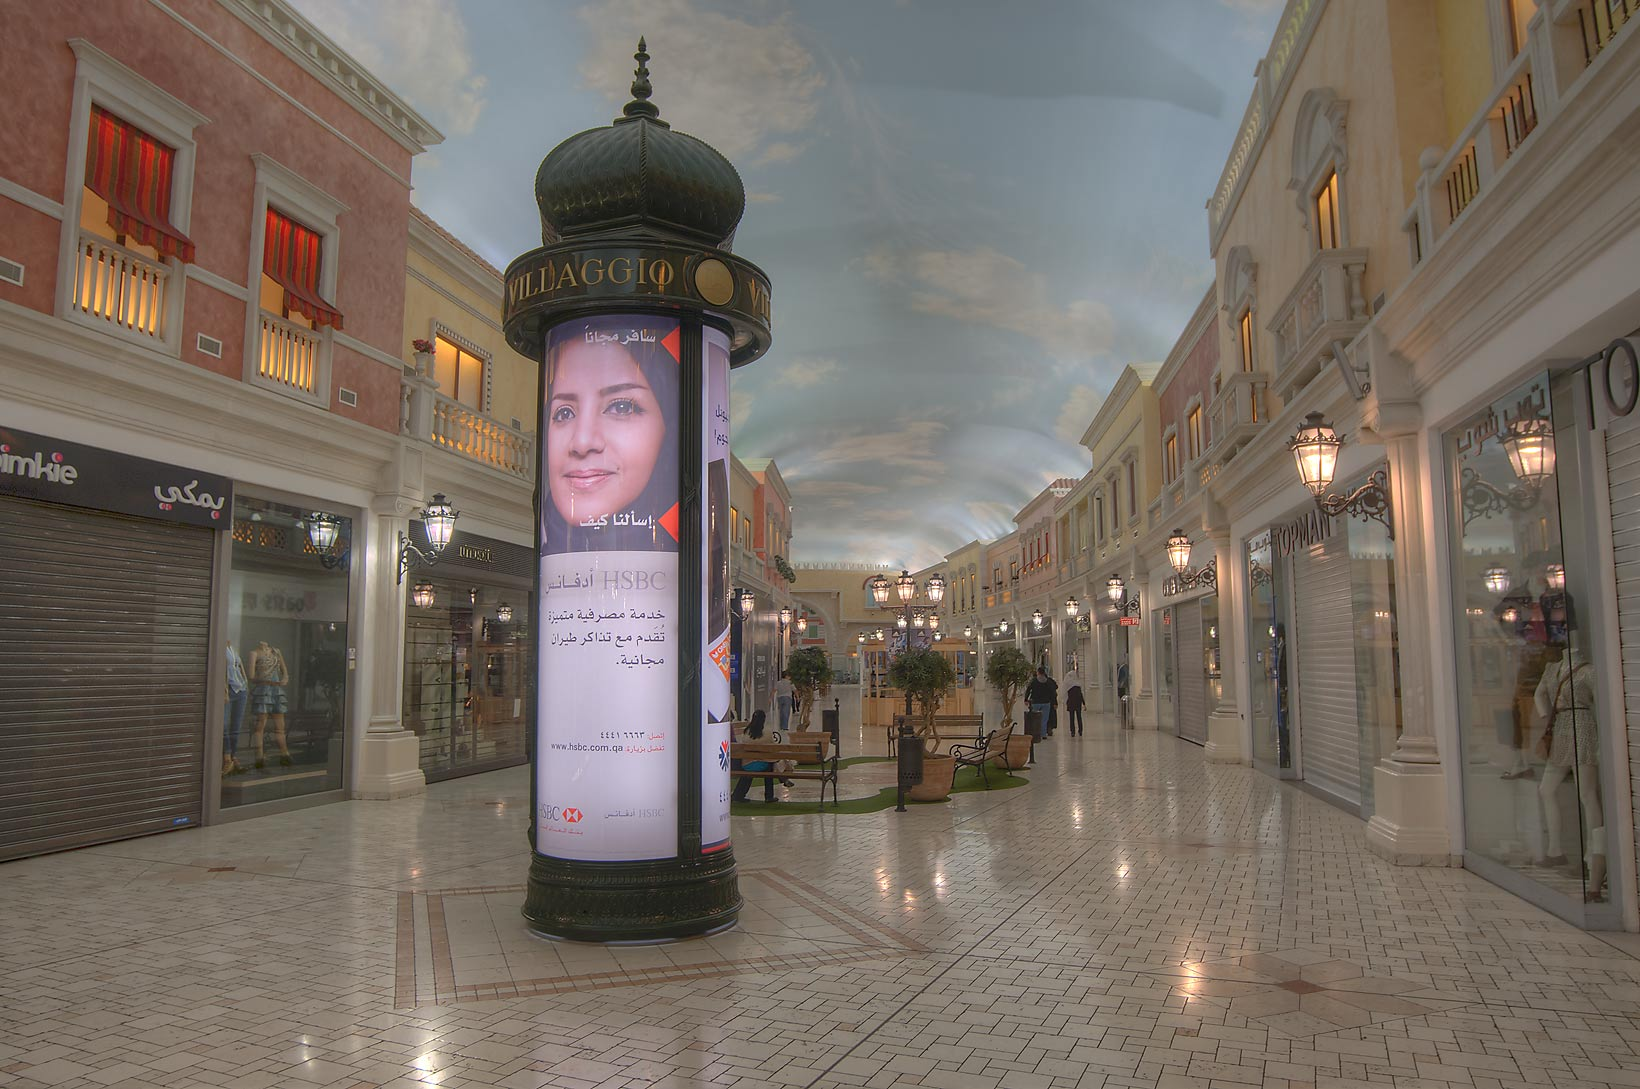 Villagio shopping mall in Aspire Zone. Doha, Qatar